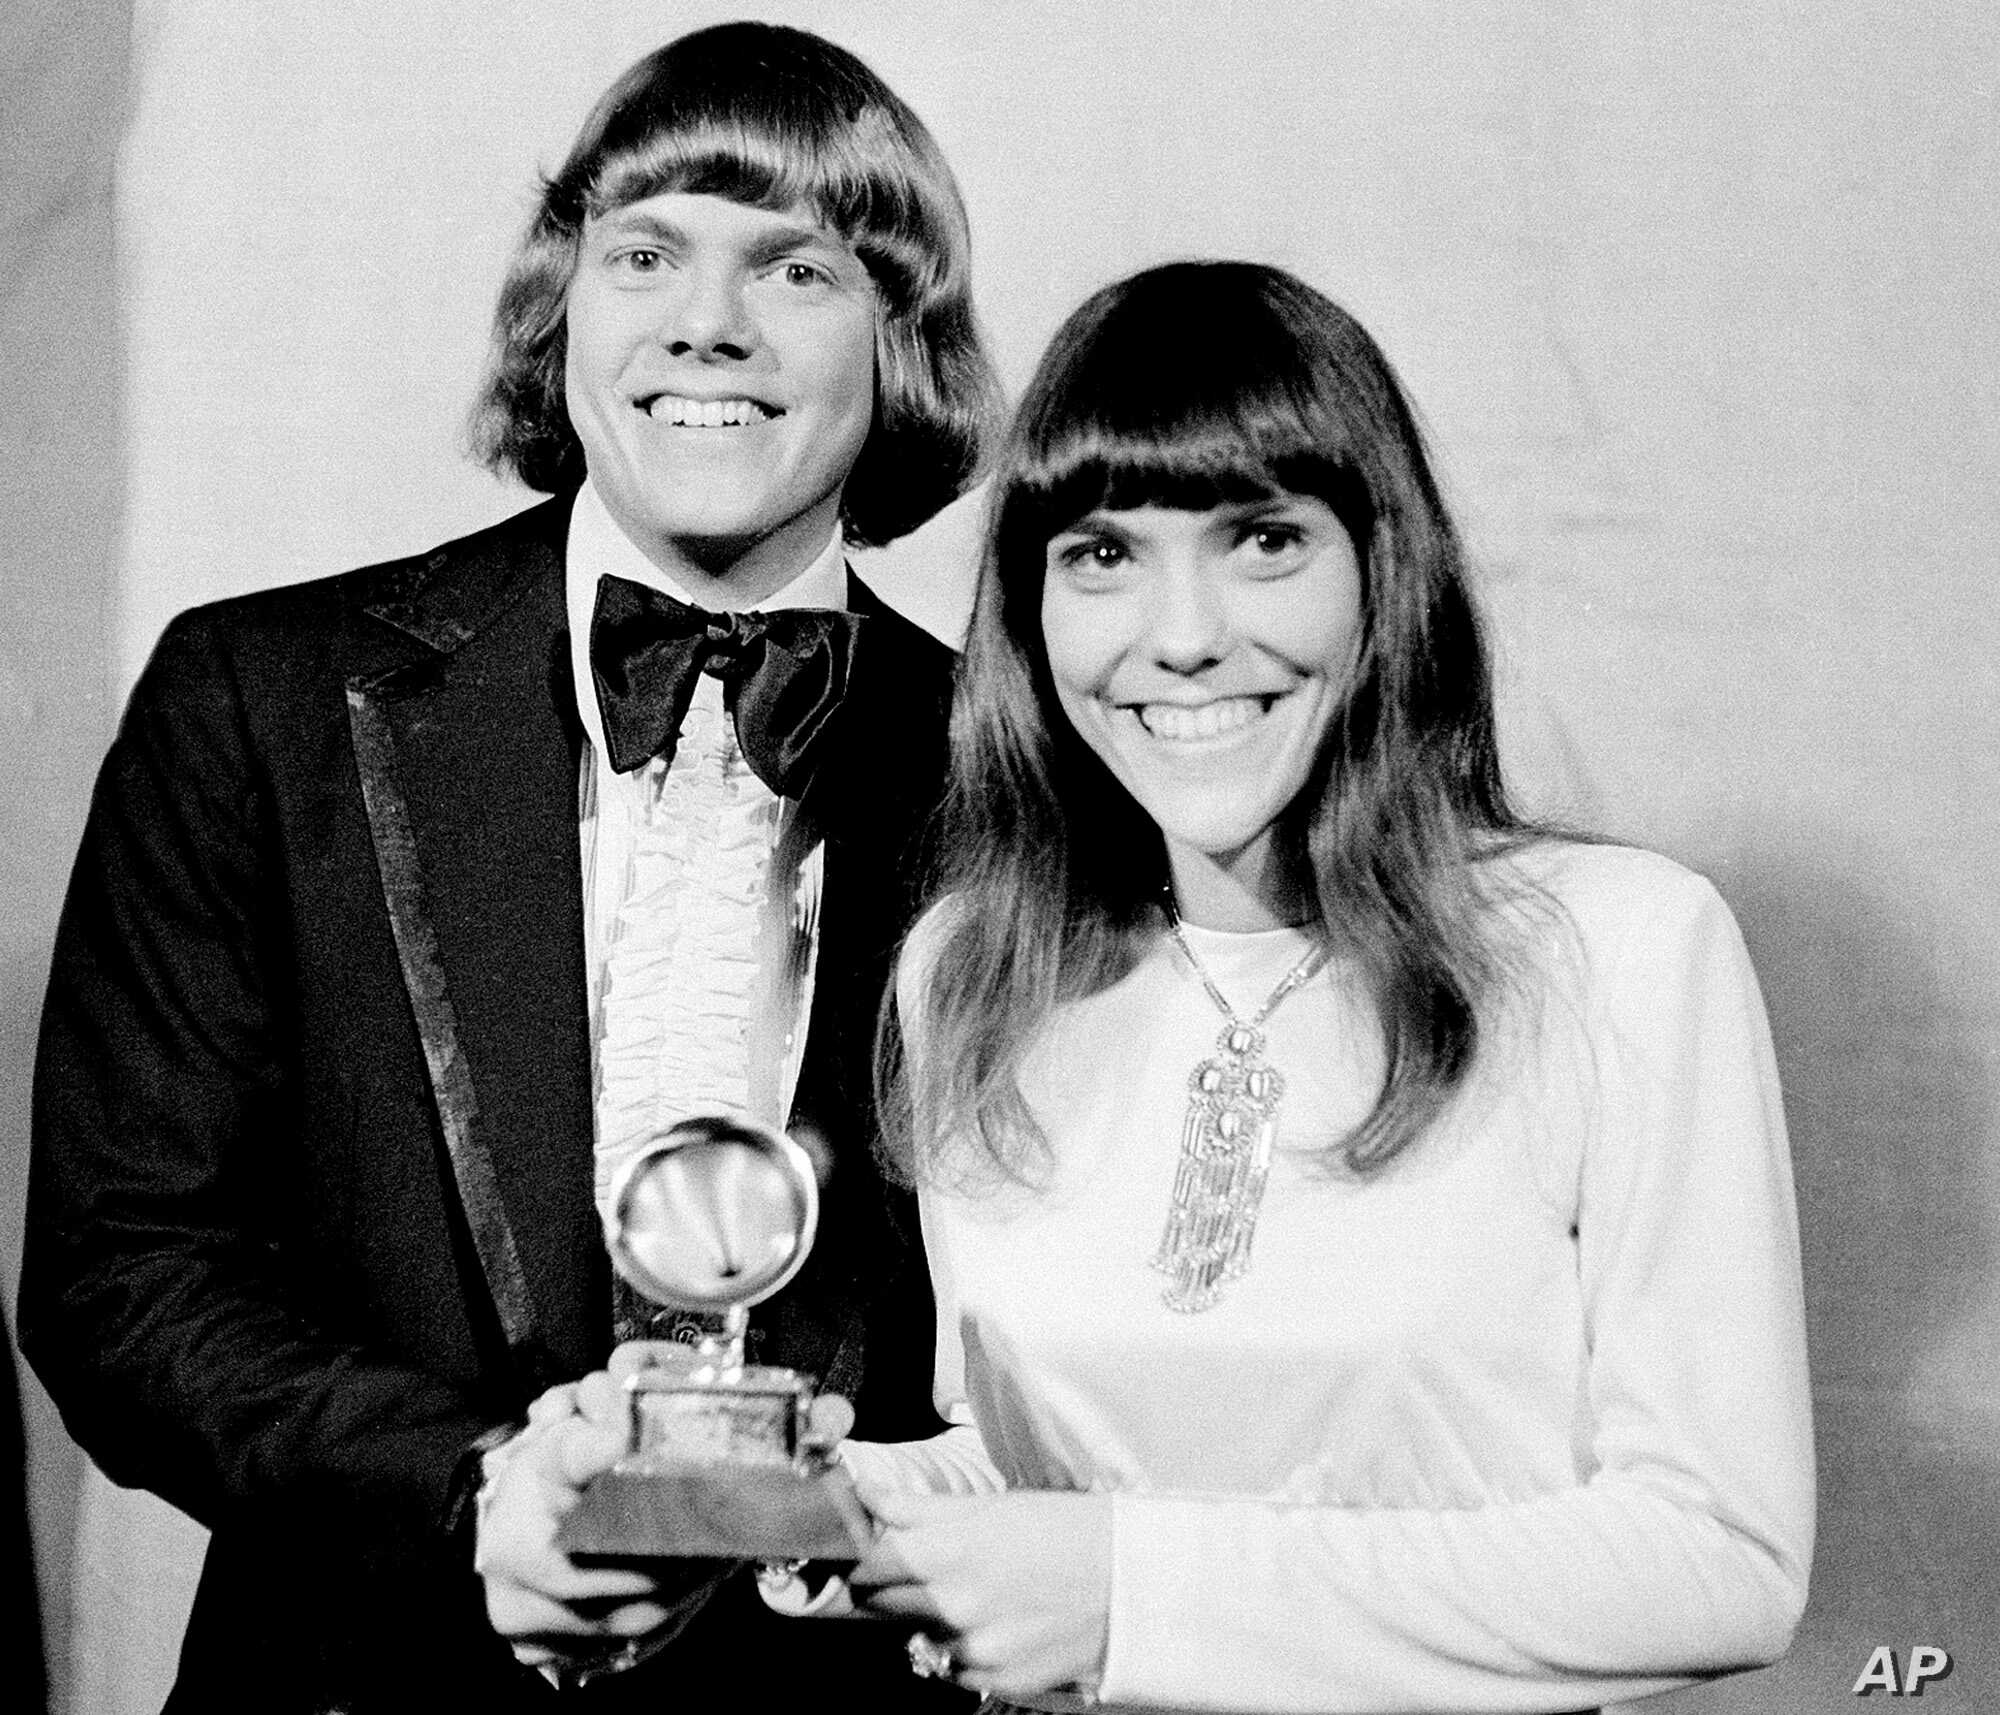 Carpenters Return with Vinyl Remasters of Hit Albums | Voice